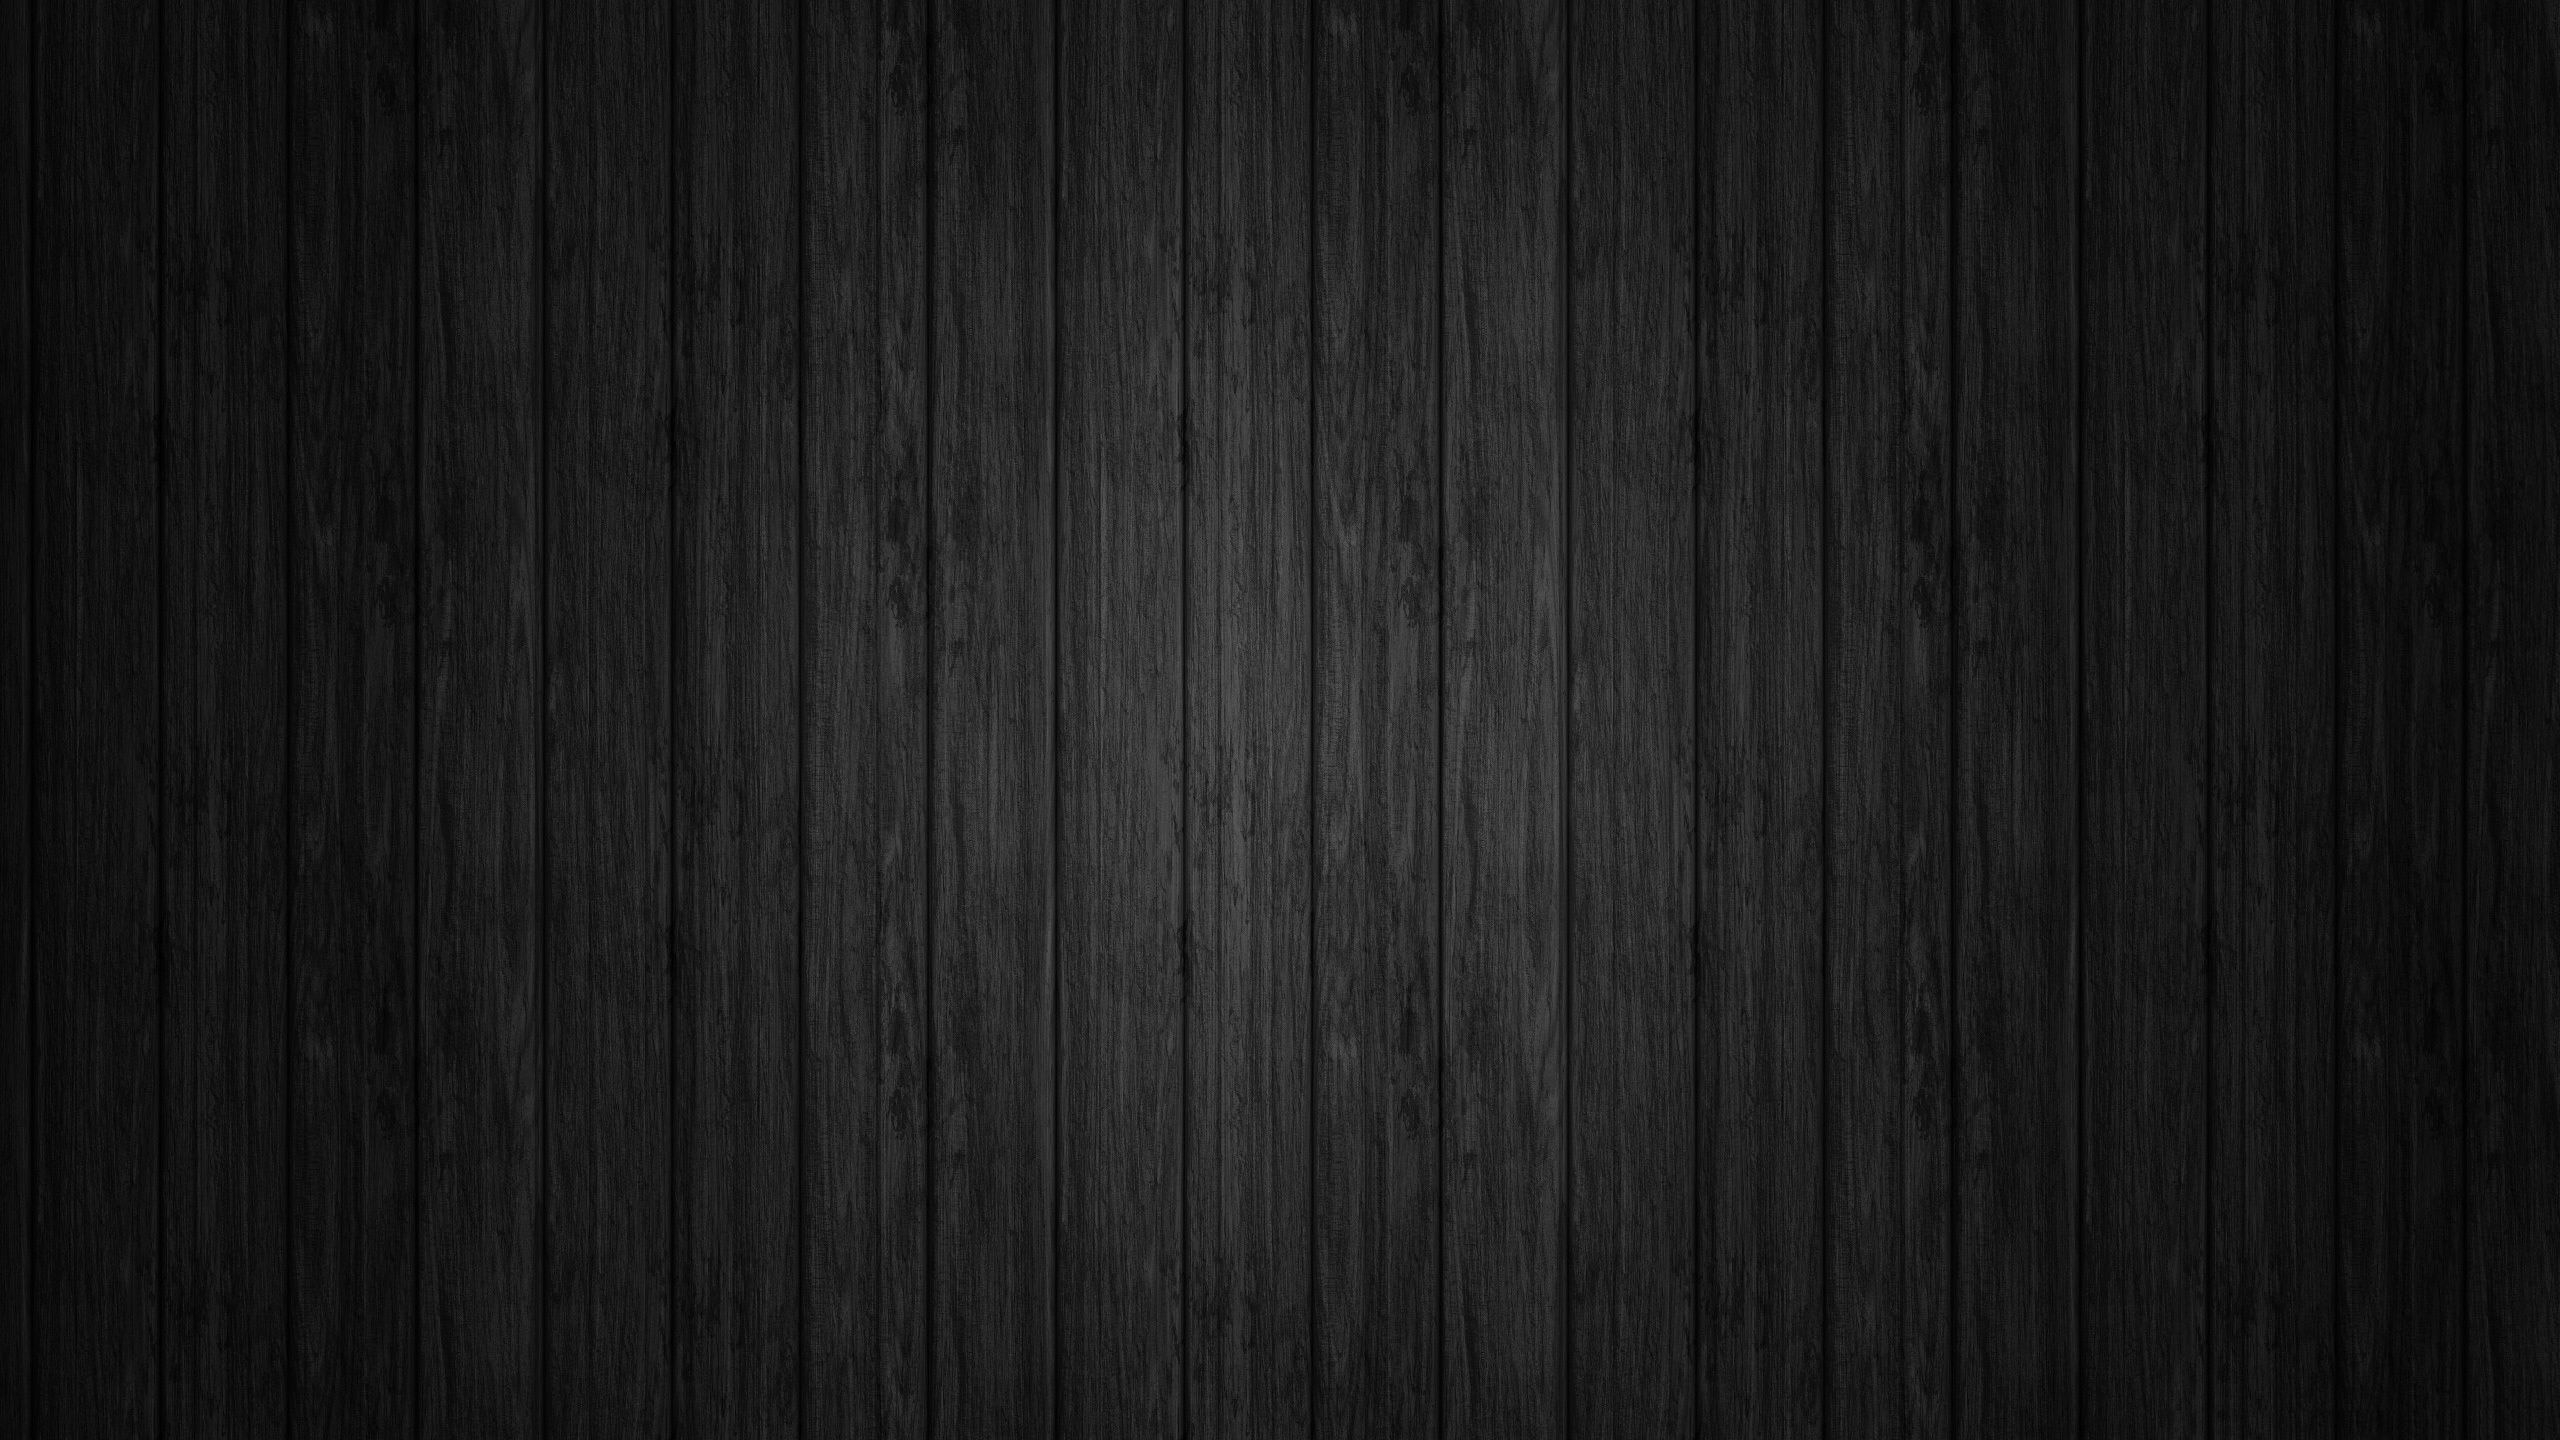 1073233-black-wood-panels